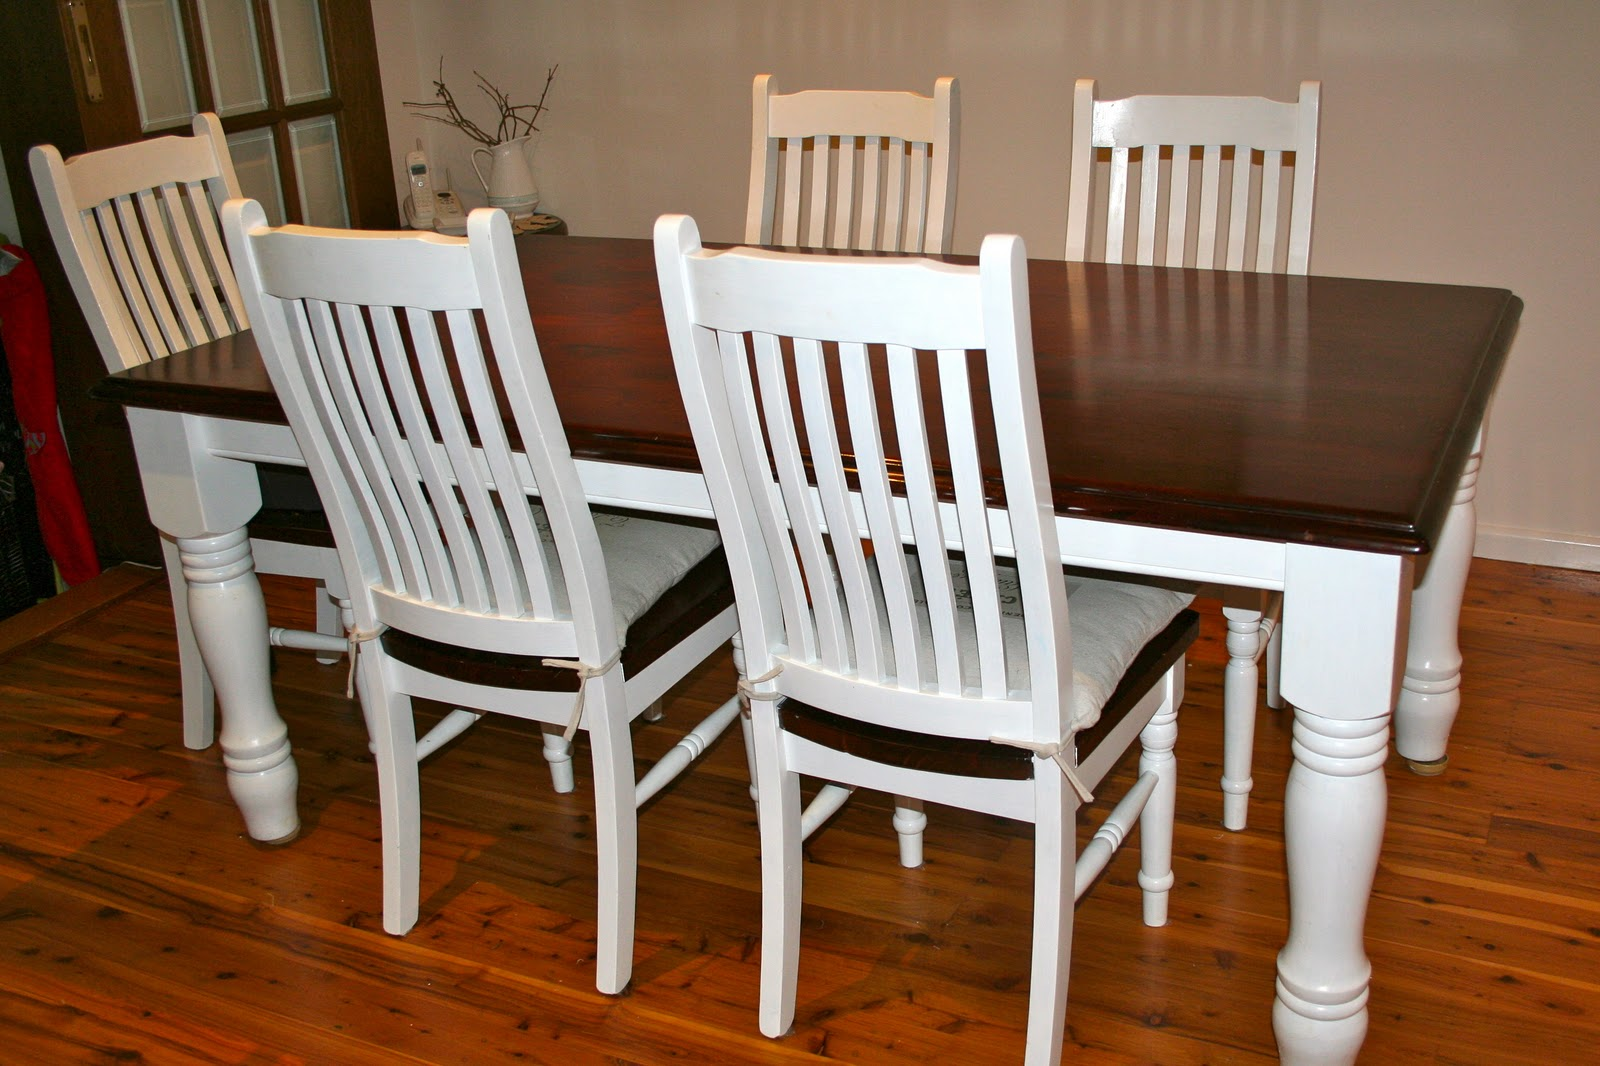 kitchen chairs argos parson for sale knot all that i seam inspiration leads to creativity